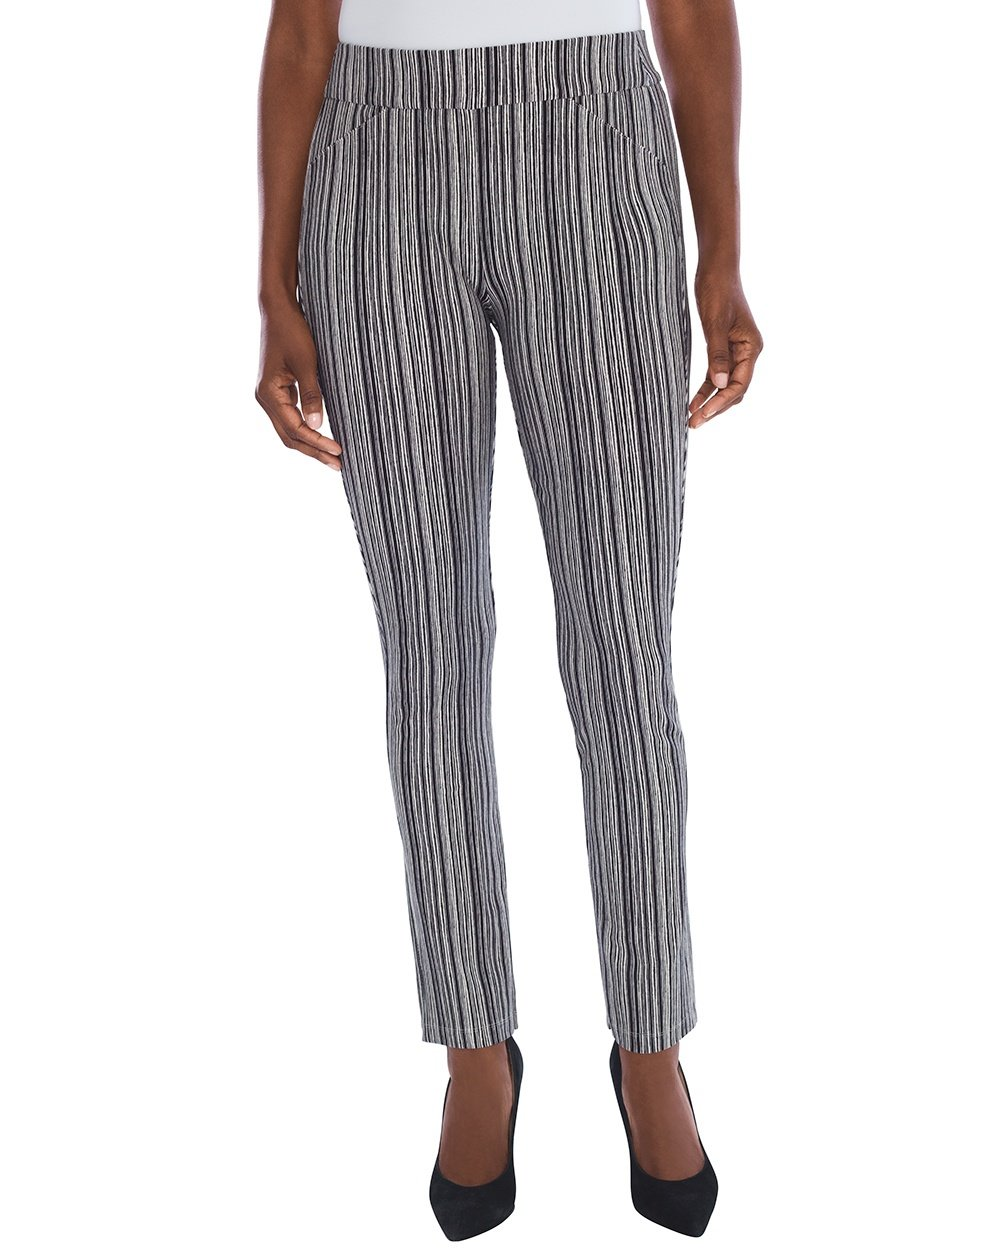 Chico's Women's Travelers Collection Striped Crepe Pants Size 14 L (2.5 REG) Black/White